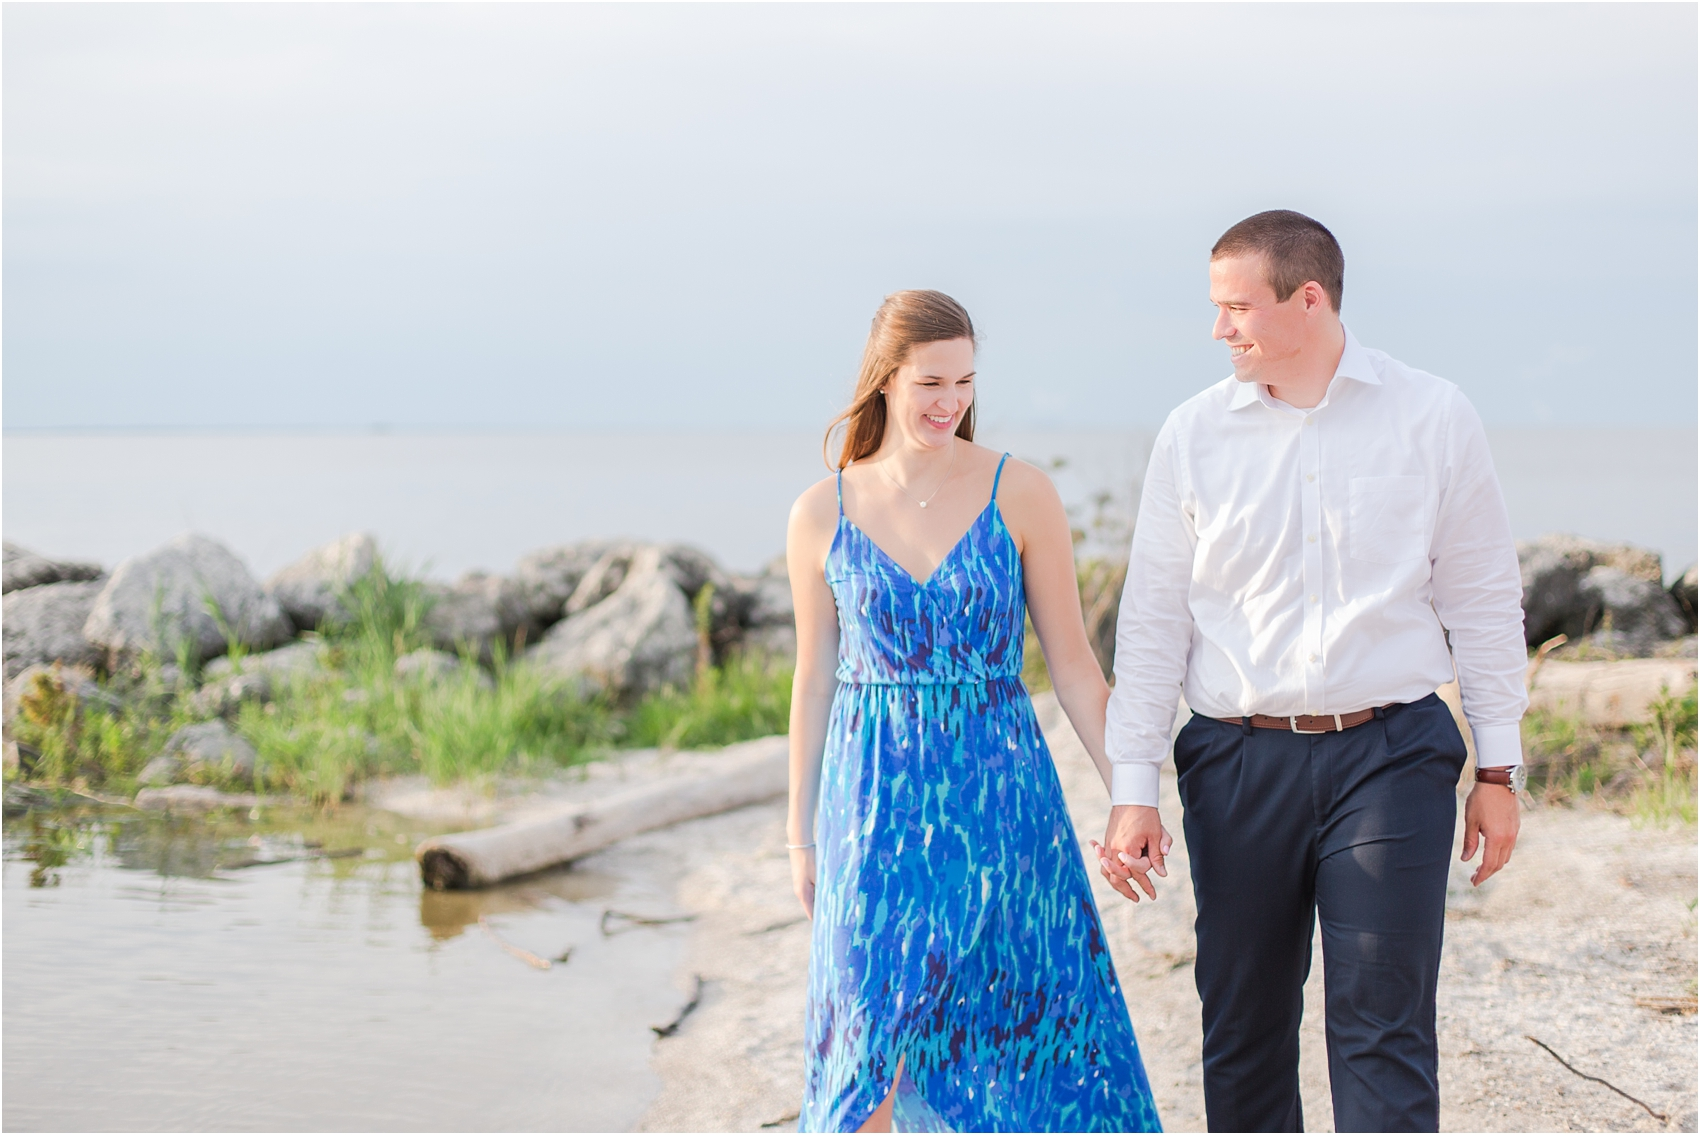 light-hearted-sunset-engagement-photos-at-the-beach-in-oregon-oh-by-courtney-carolyn-photography_0028.jpg